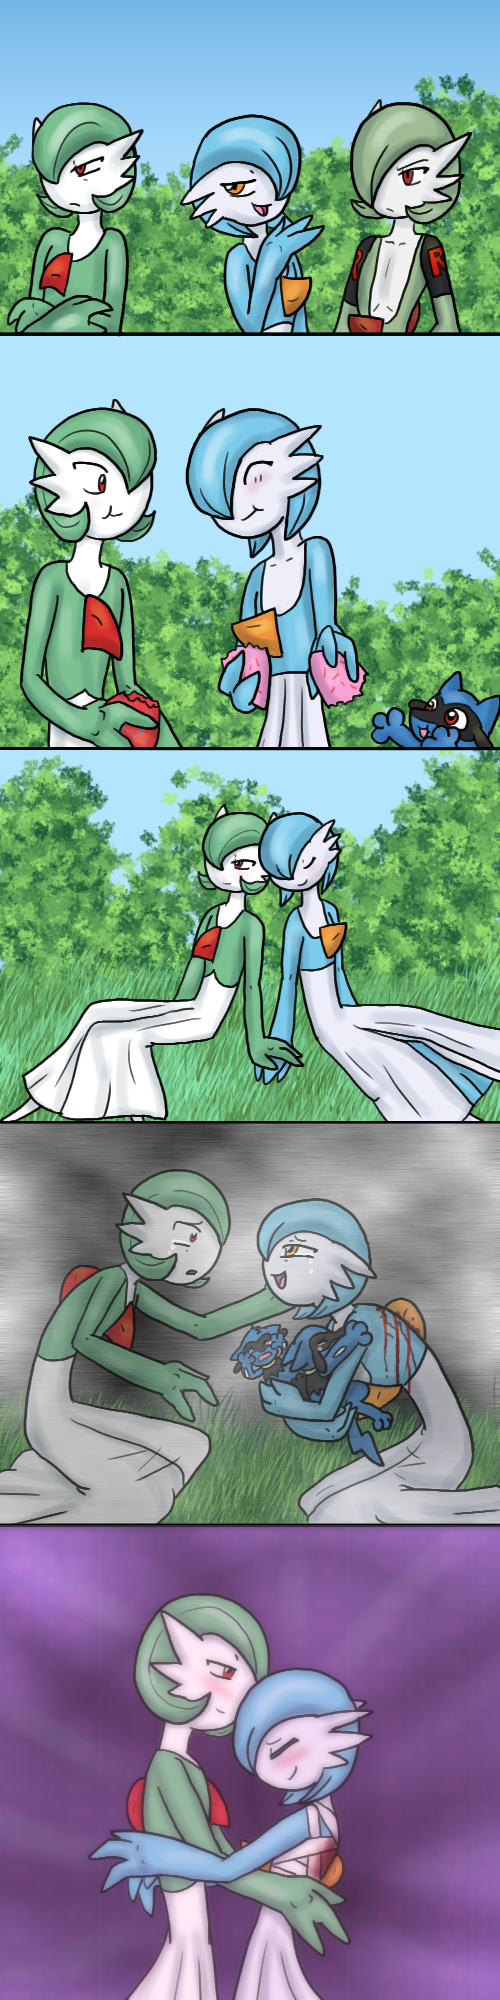 Progression of happiness by The-Clockwork-Crow